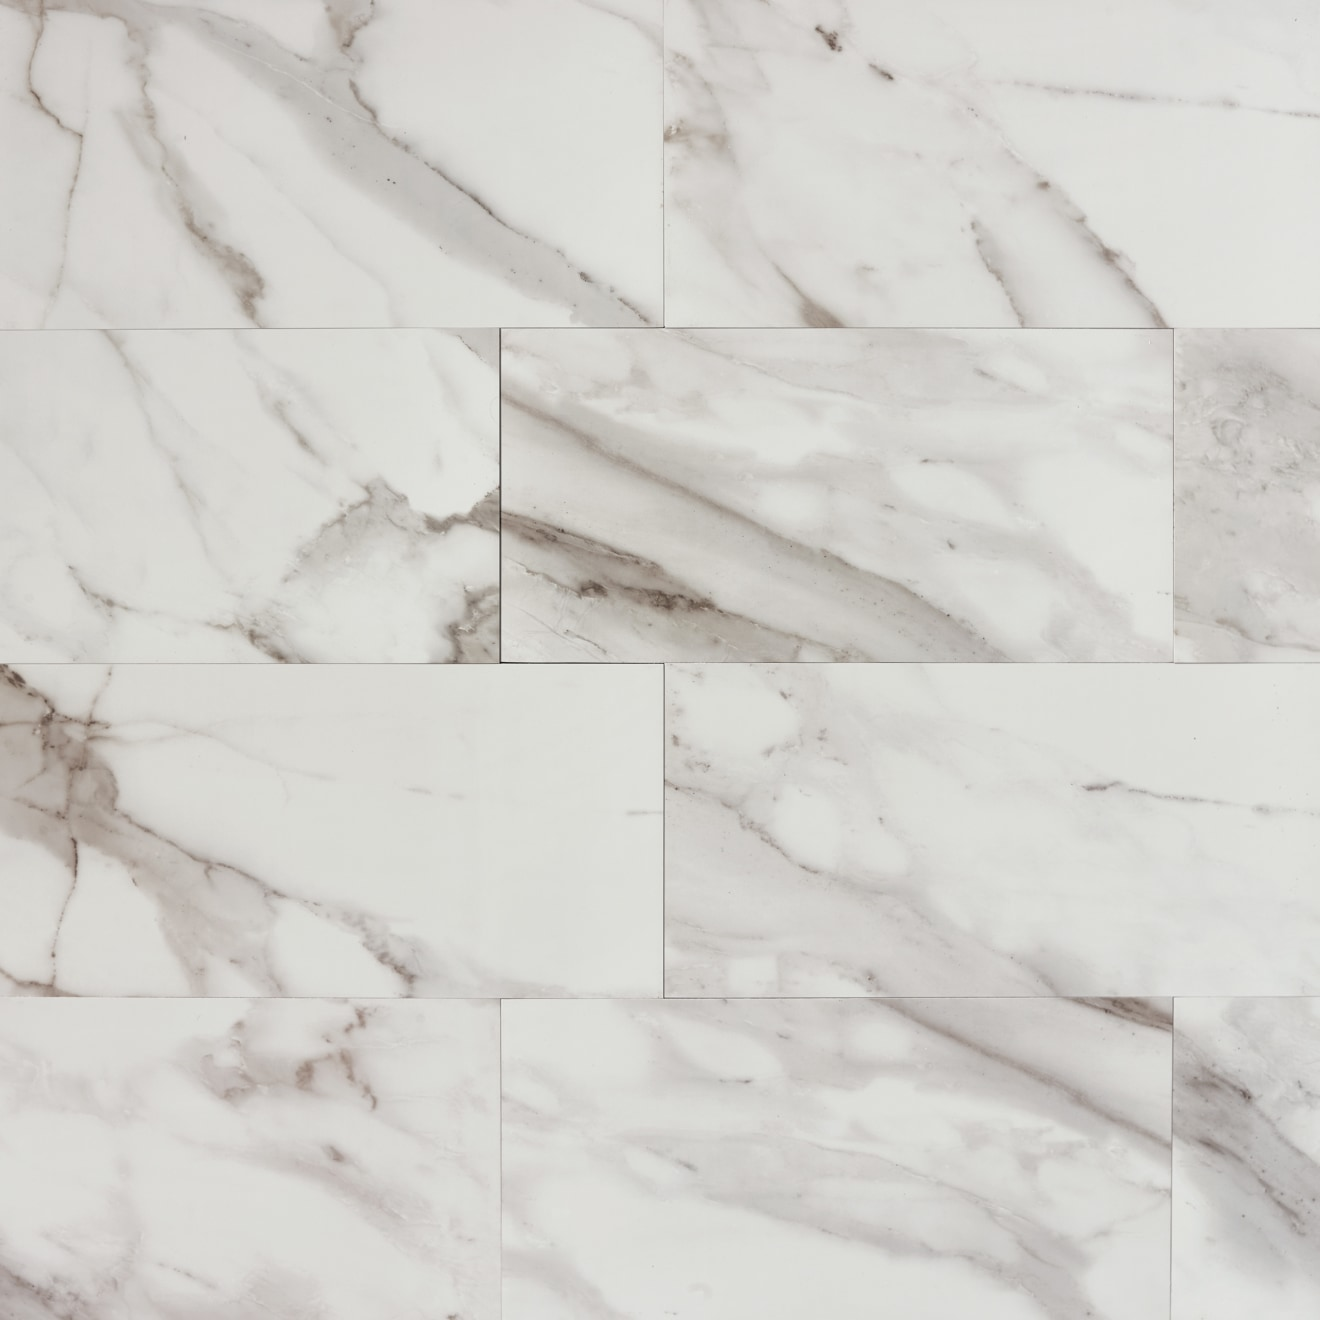 Delighted 12X12 Floor Tile Huge 12X24 Ceramic Floor Tile Rectangular 18 Ceramic Tile 20 X 20 Floor Tile Patterns Youthful 2X4 White Subway Tile Brown3X6 Beveled Subway Tile 12X24 Calacatta Field Tile Polished